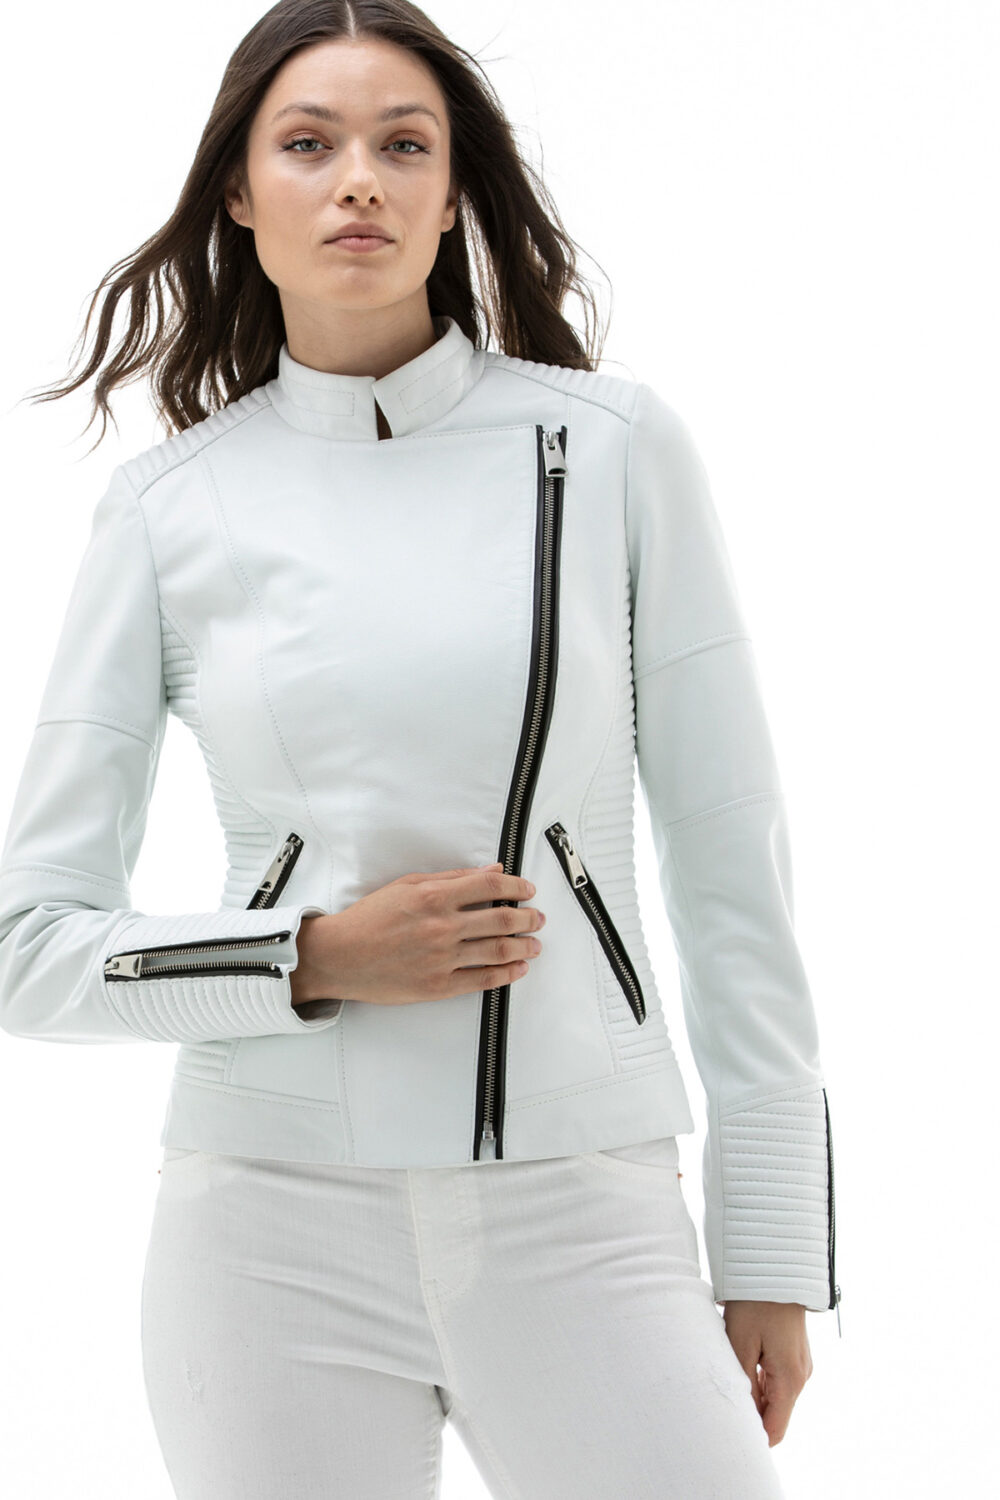 Women's White Leather Jacket